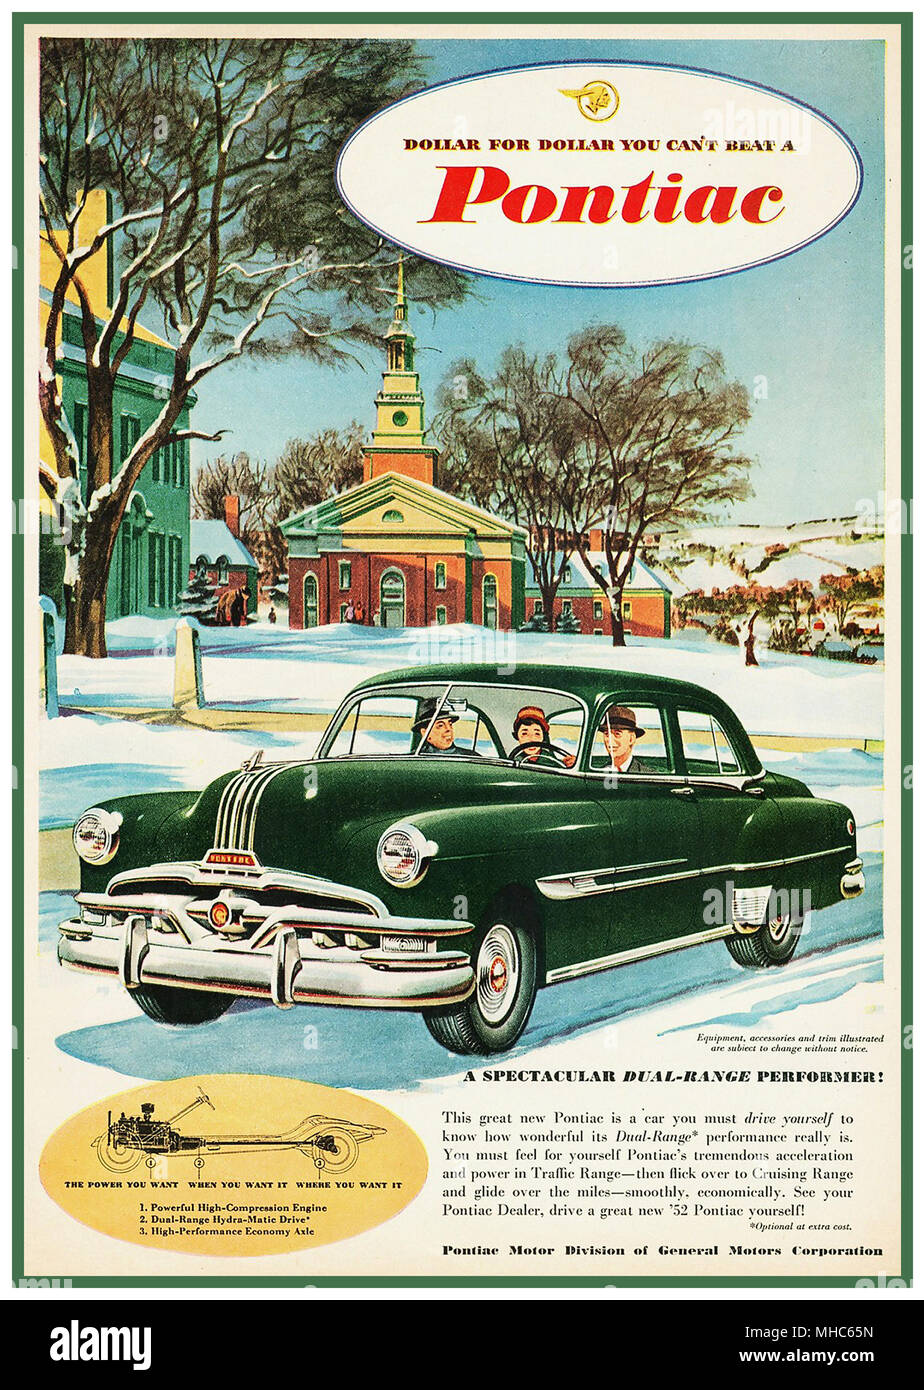 1950's Vintage American Automobile poster and press advertisement, featuring Pontiac 1952 Chieftain 2 Door Sedan 'Dollar for Dollar you can't beat a Pontiac' America USA - Stock Image